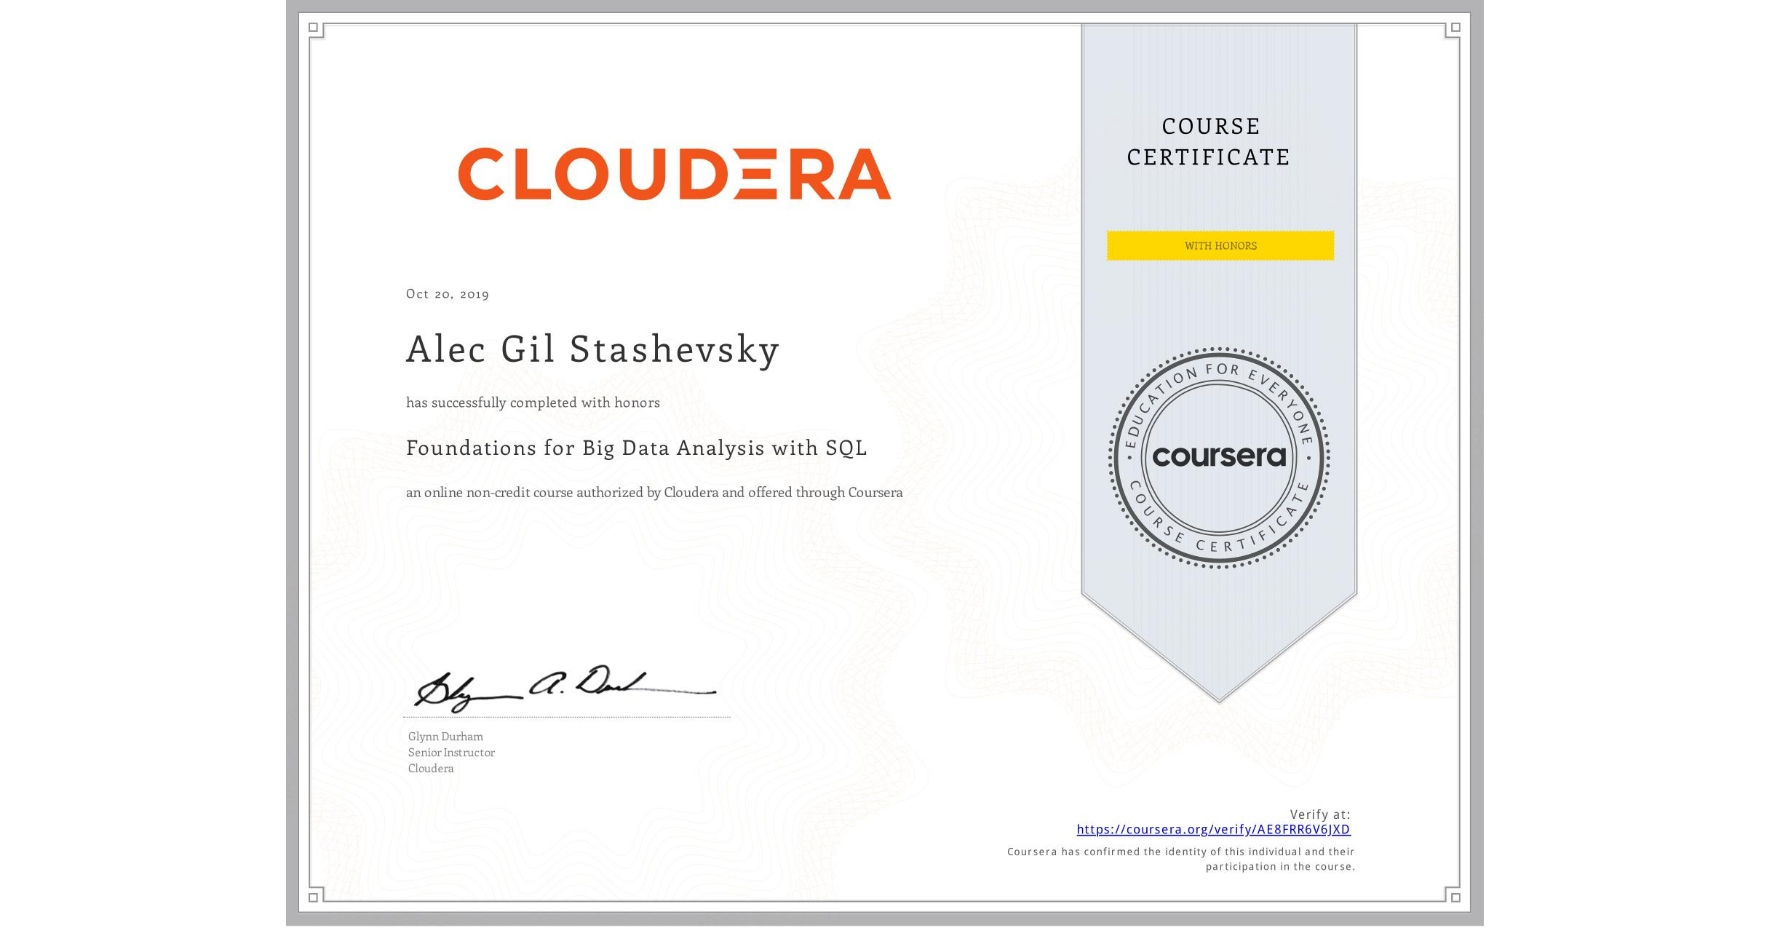 View certificate for Alec Gil Stashevsky, Foundations for Big Data Analysis with SQL, an online non-credit course authorized by Cloudera and offered through Coursera